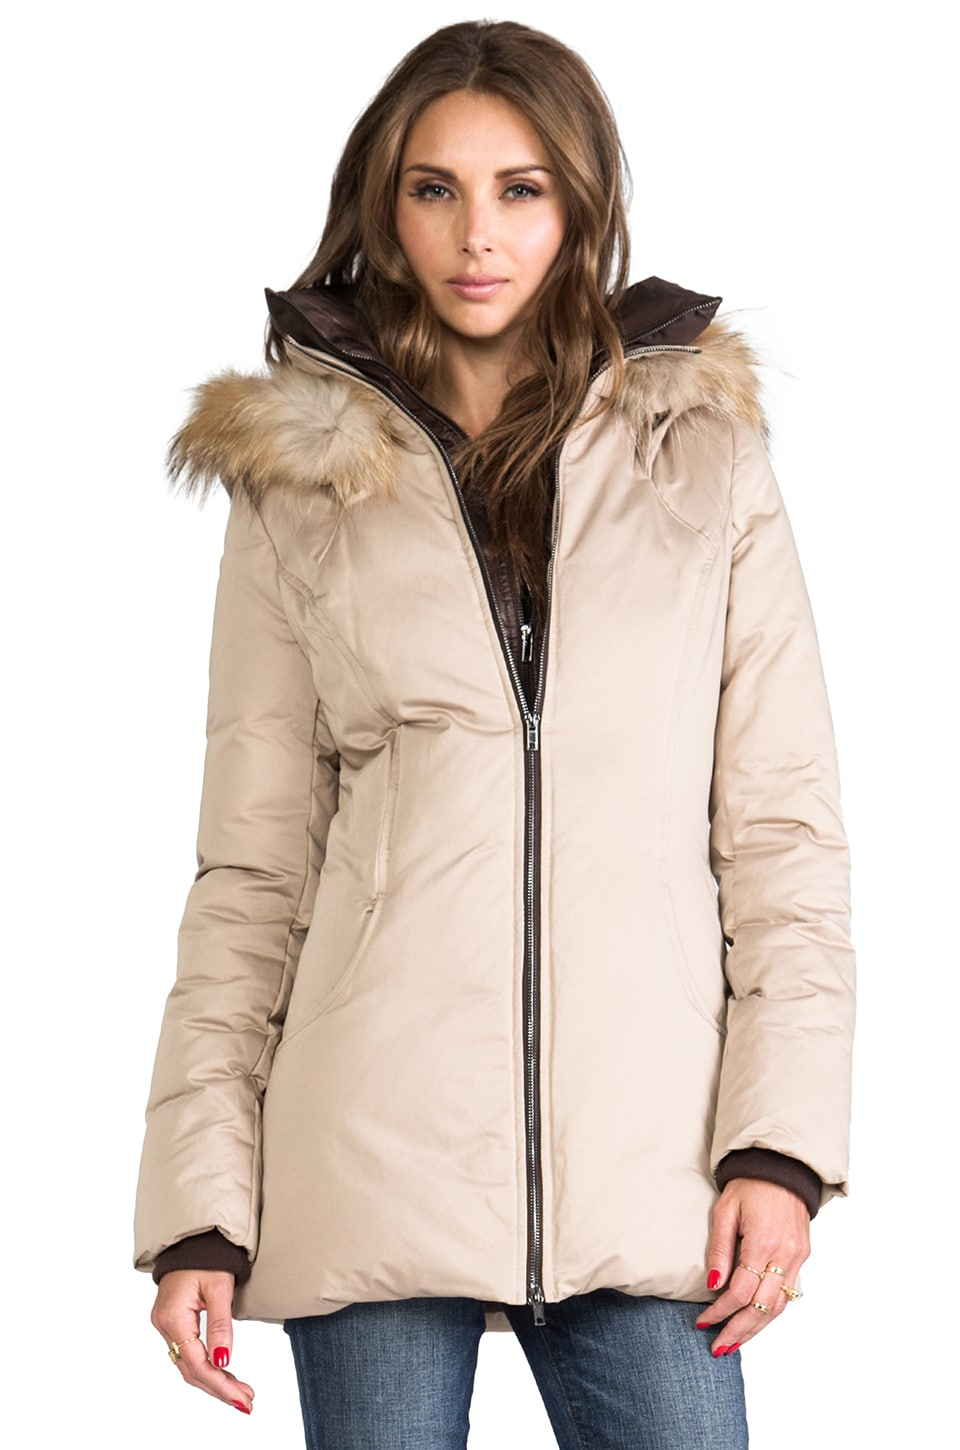 Soia & Kyo Clea Down Coat with Removable Fur Hood in Sand